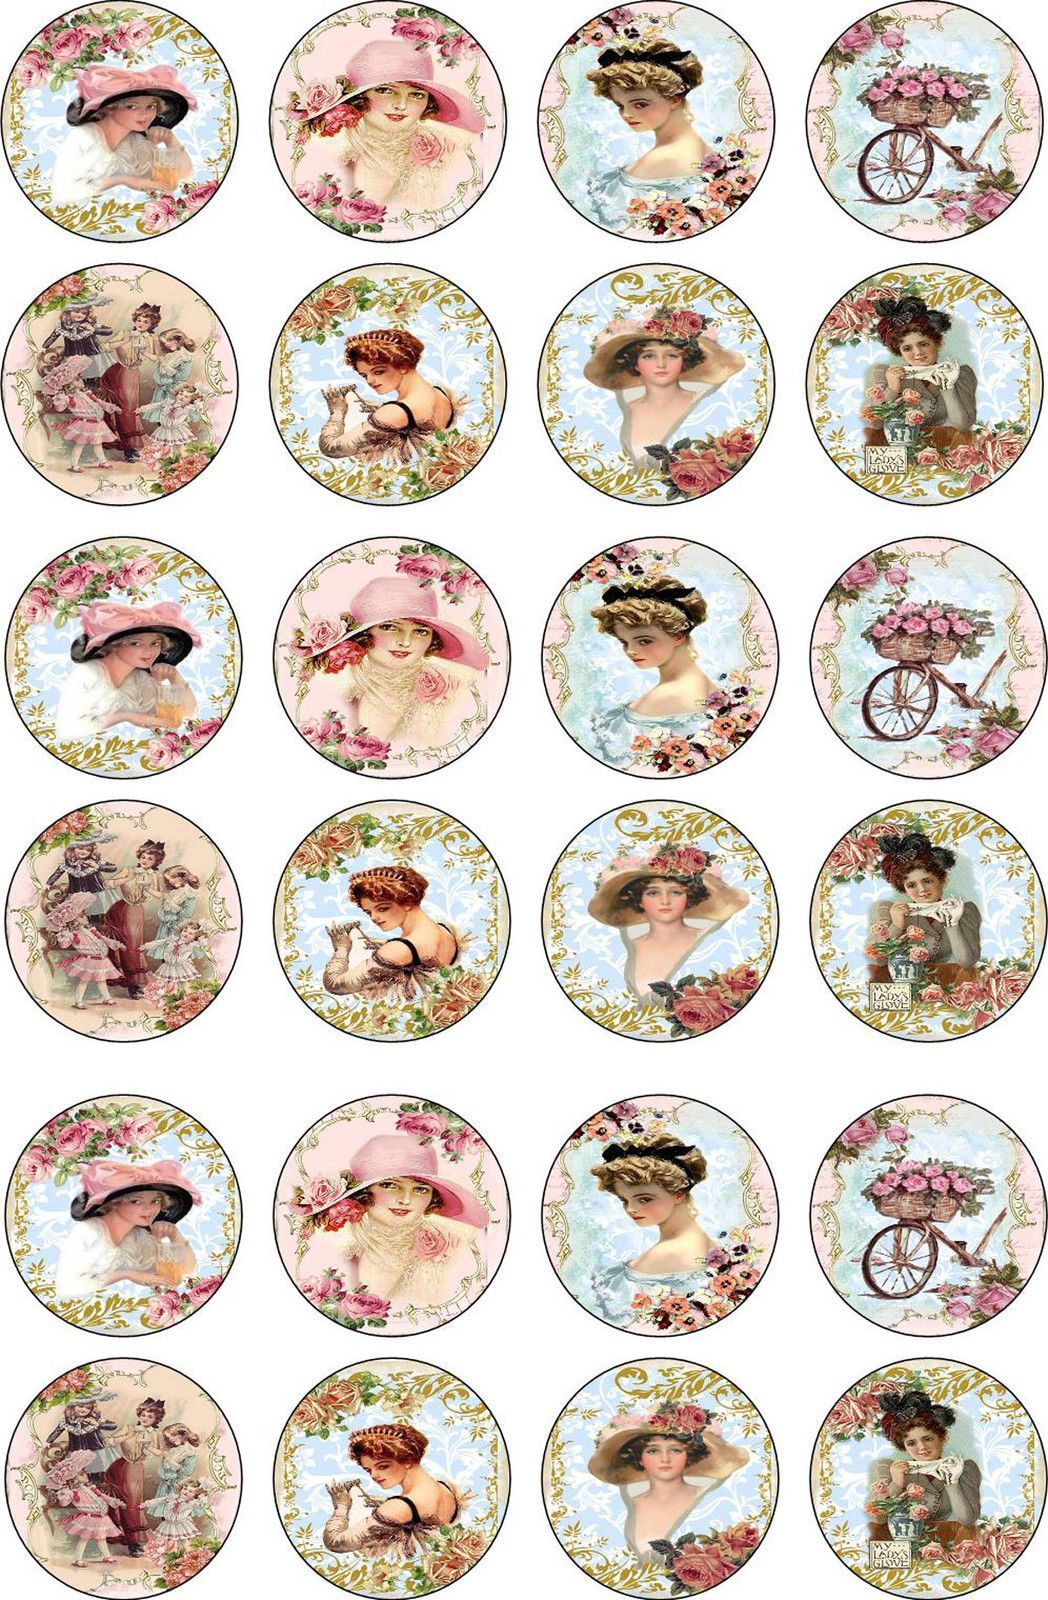 Bottlecap Victorian Women Round And Oval Glossy Stickers Scrapbooking Crafts